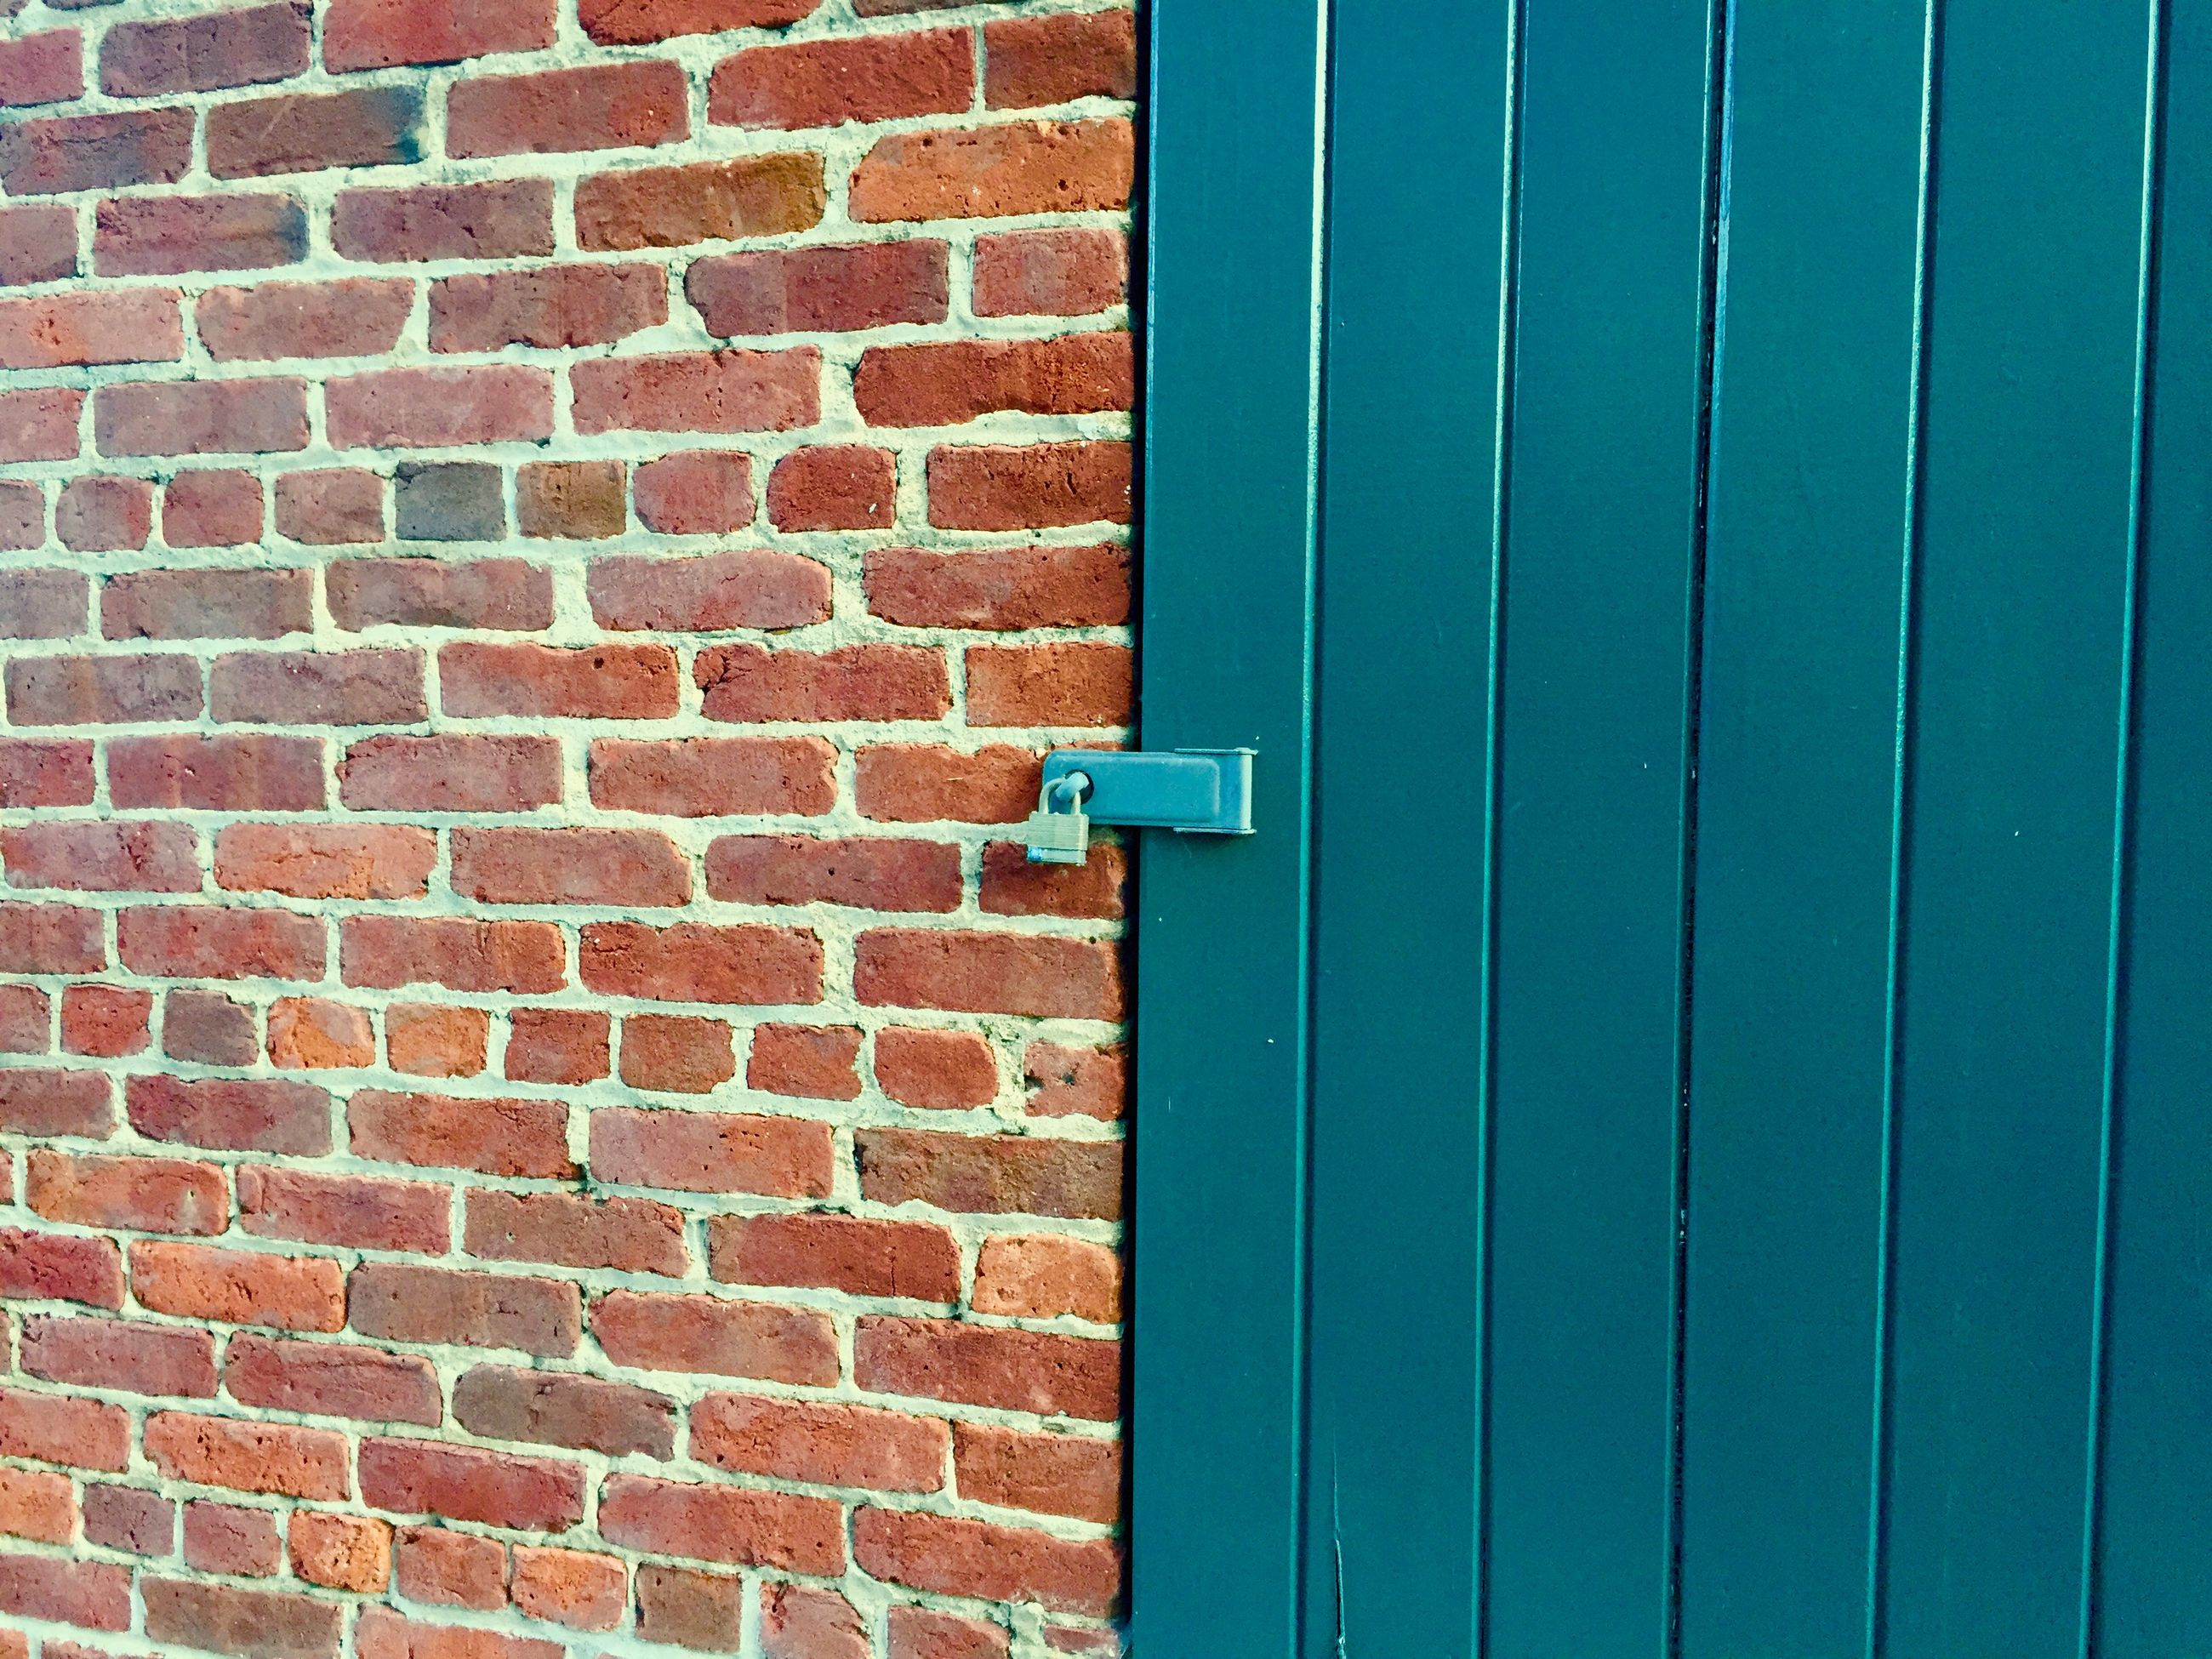 wall - building feature, built structure, architecture, building exterior, brick wall, wall, red, blue, protection, door, safety, closed, day, outdoors, no people, security, textured, pattern, low angle view, close-up